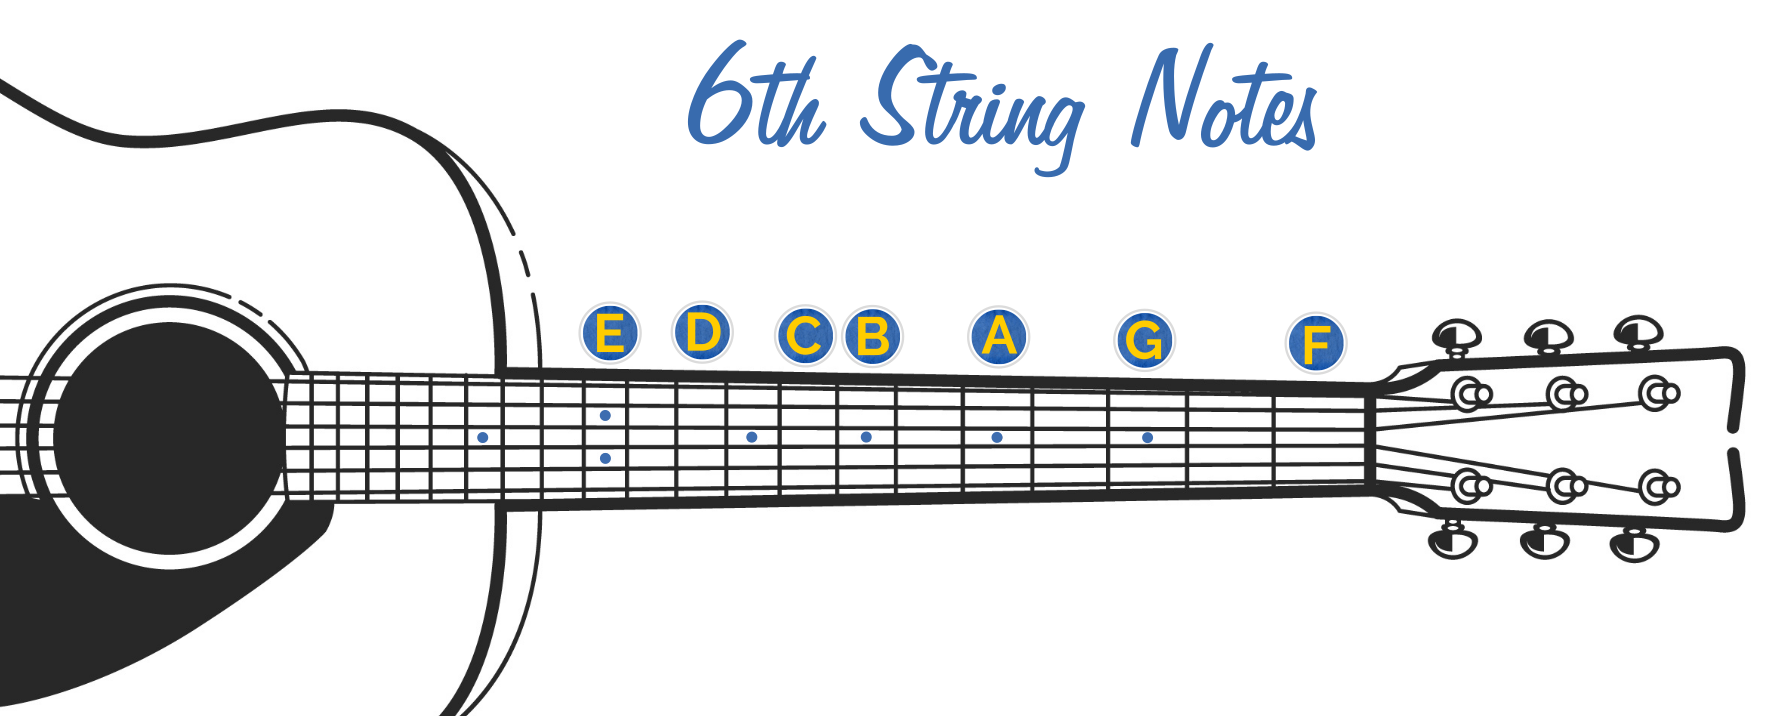 6th String Fretboard Notes at Each Dot